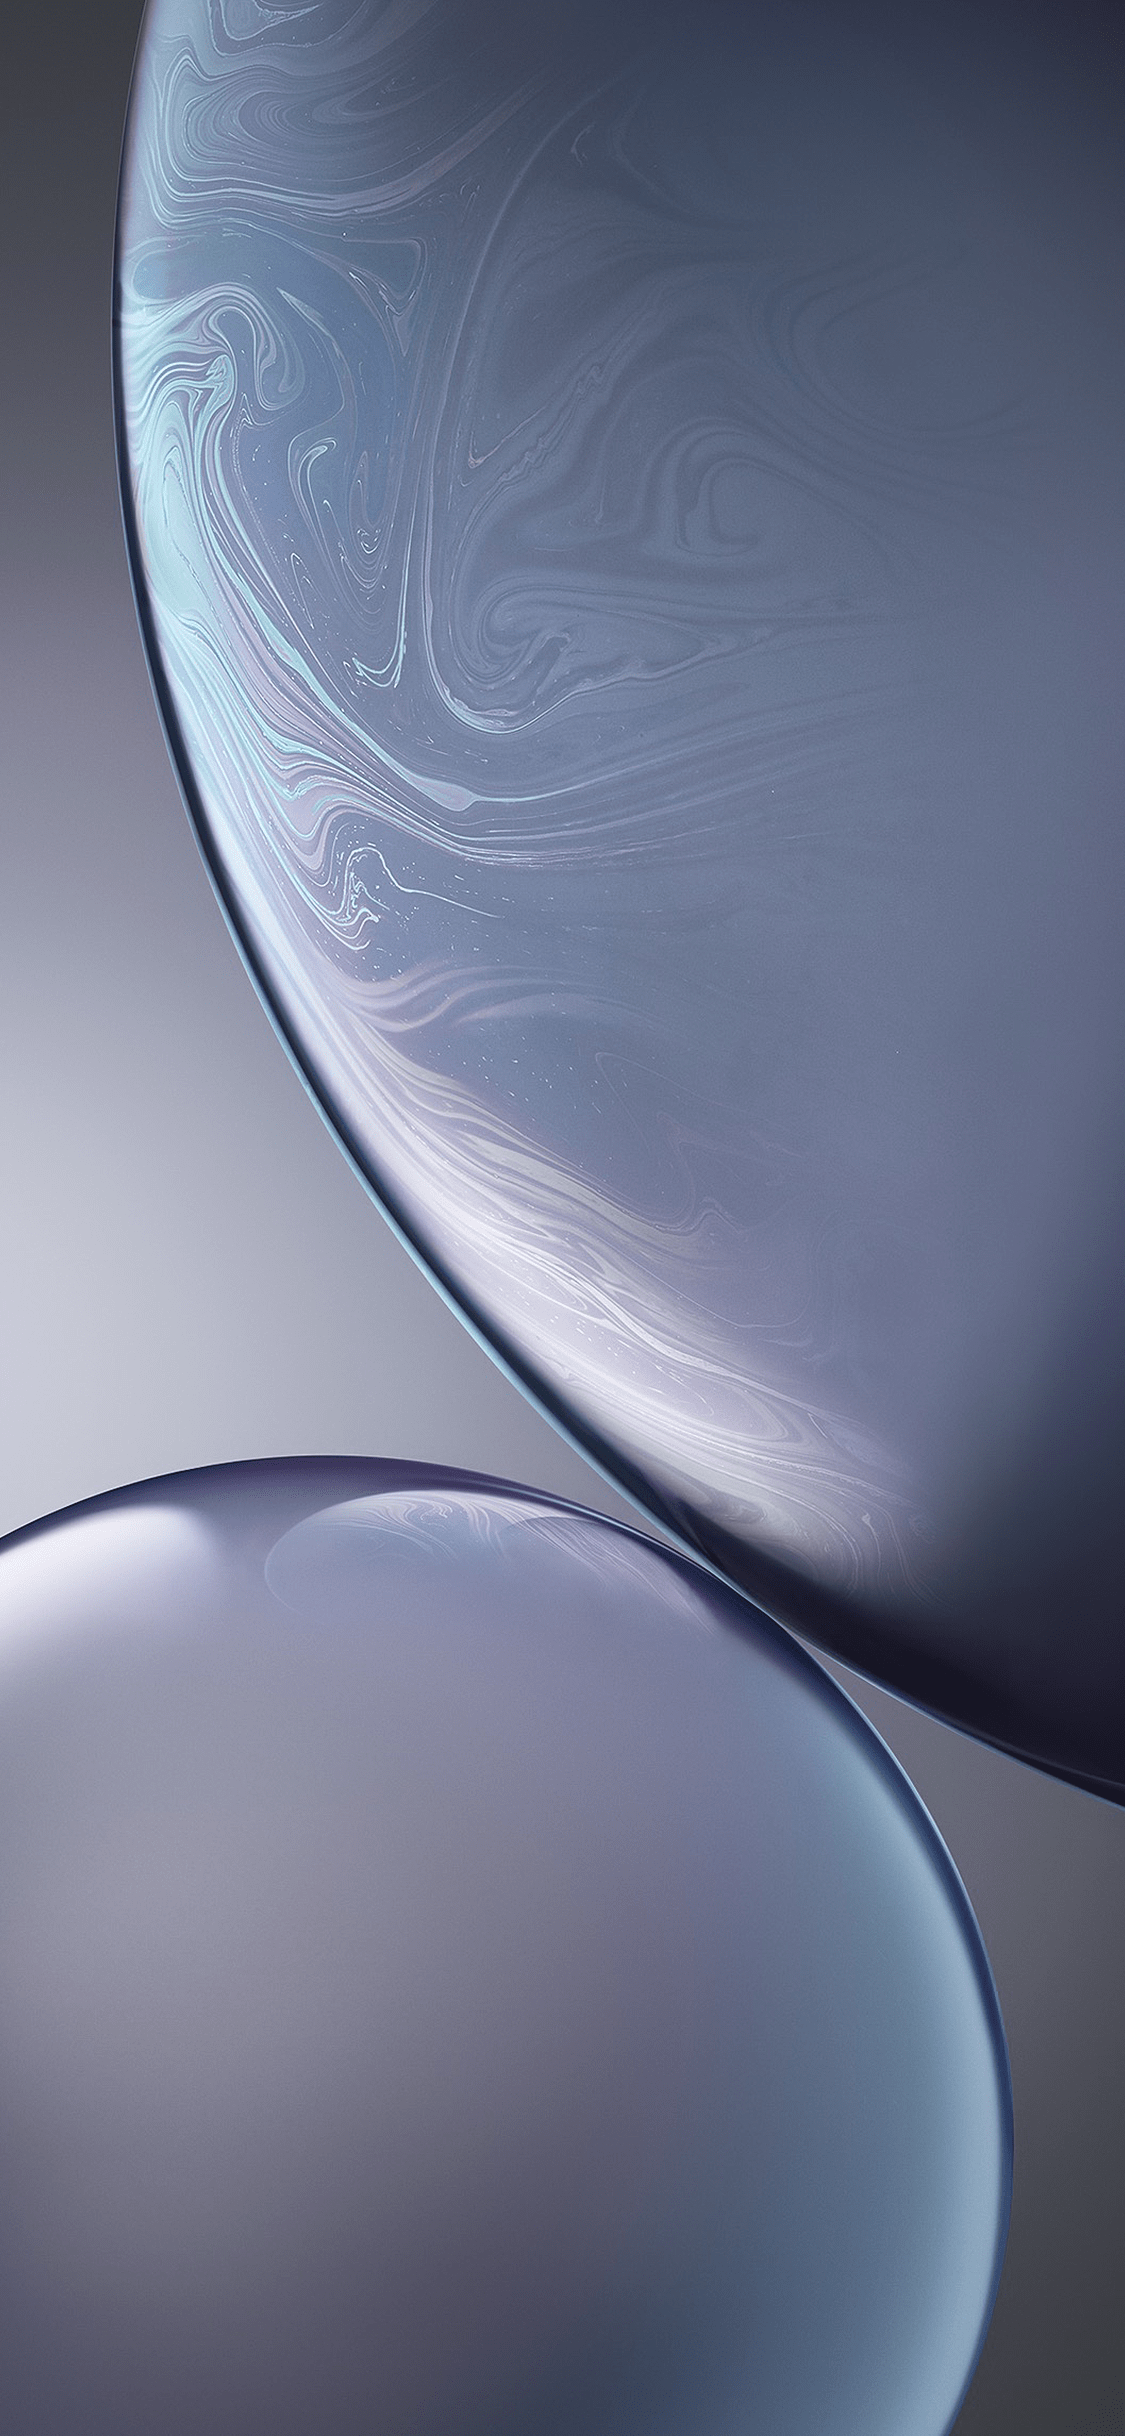 iPhone XR Wallpaper   NawPic